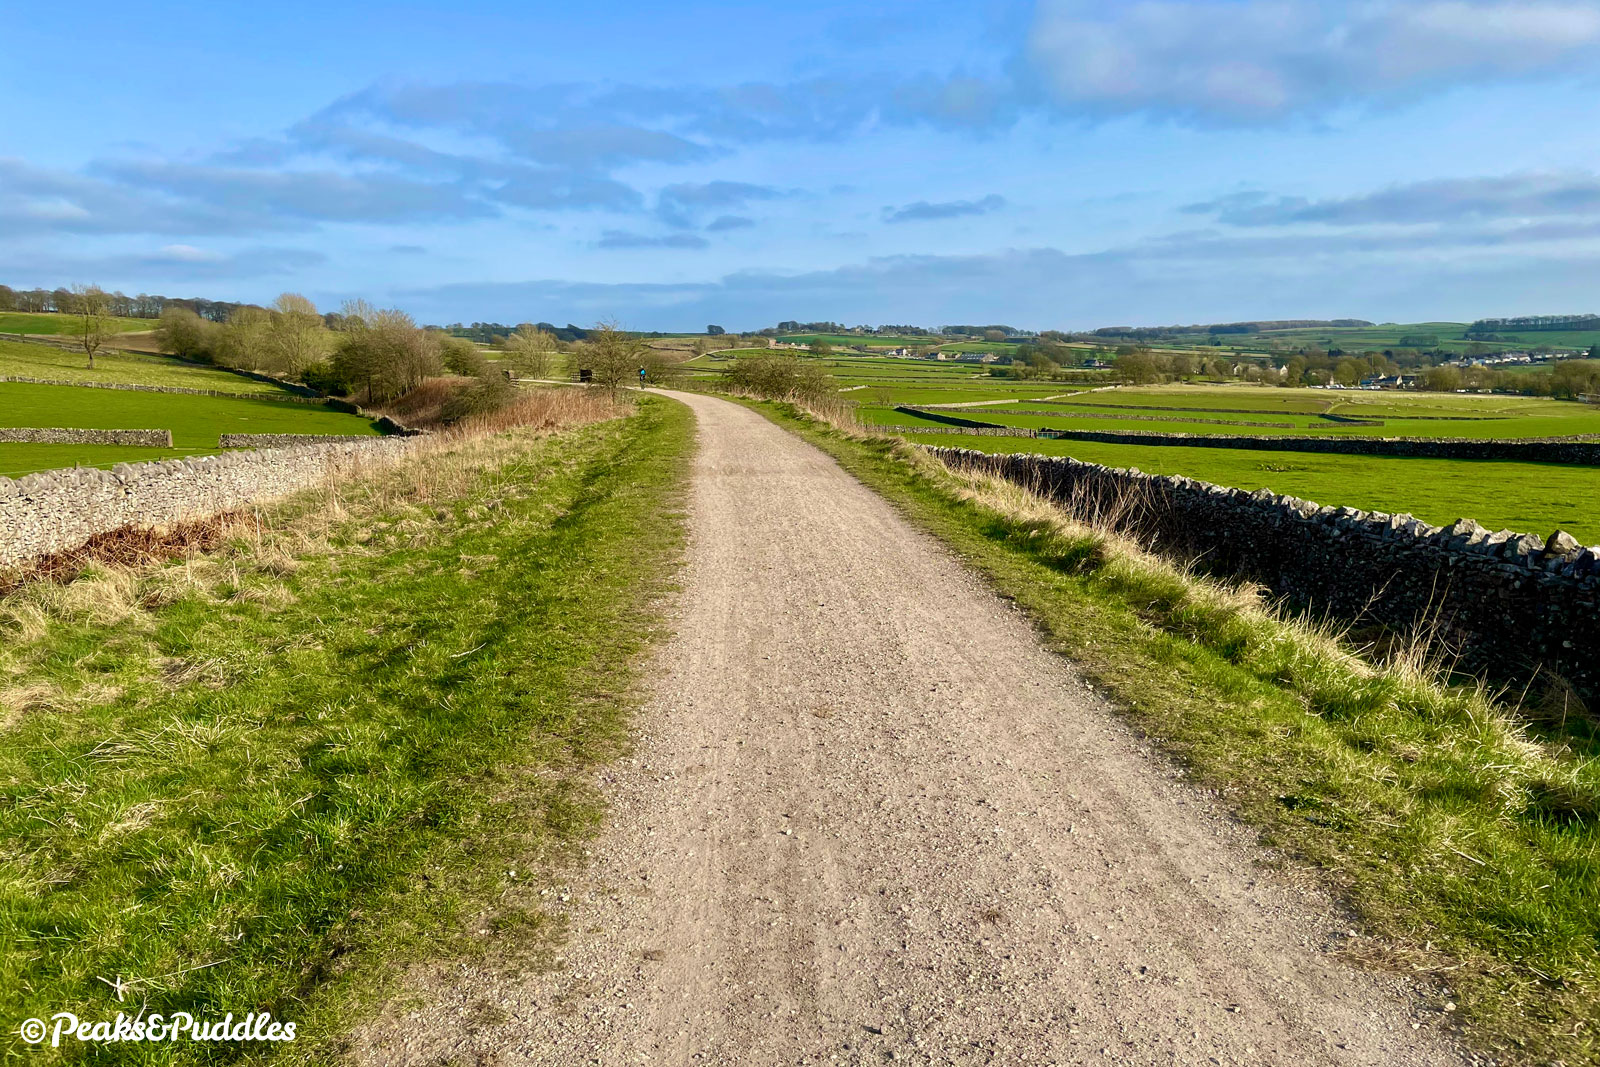 Between Newhaven and Biggin, the trail enjoys a wide open swathe of the landscape to itself.